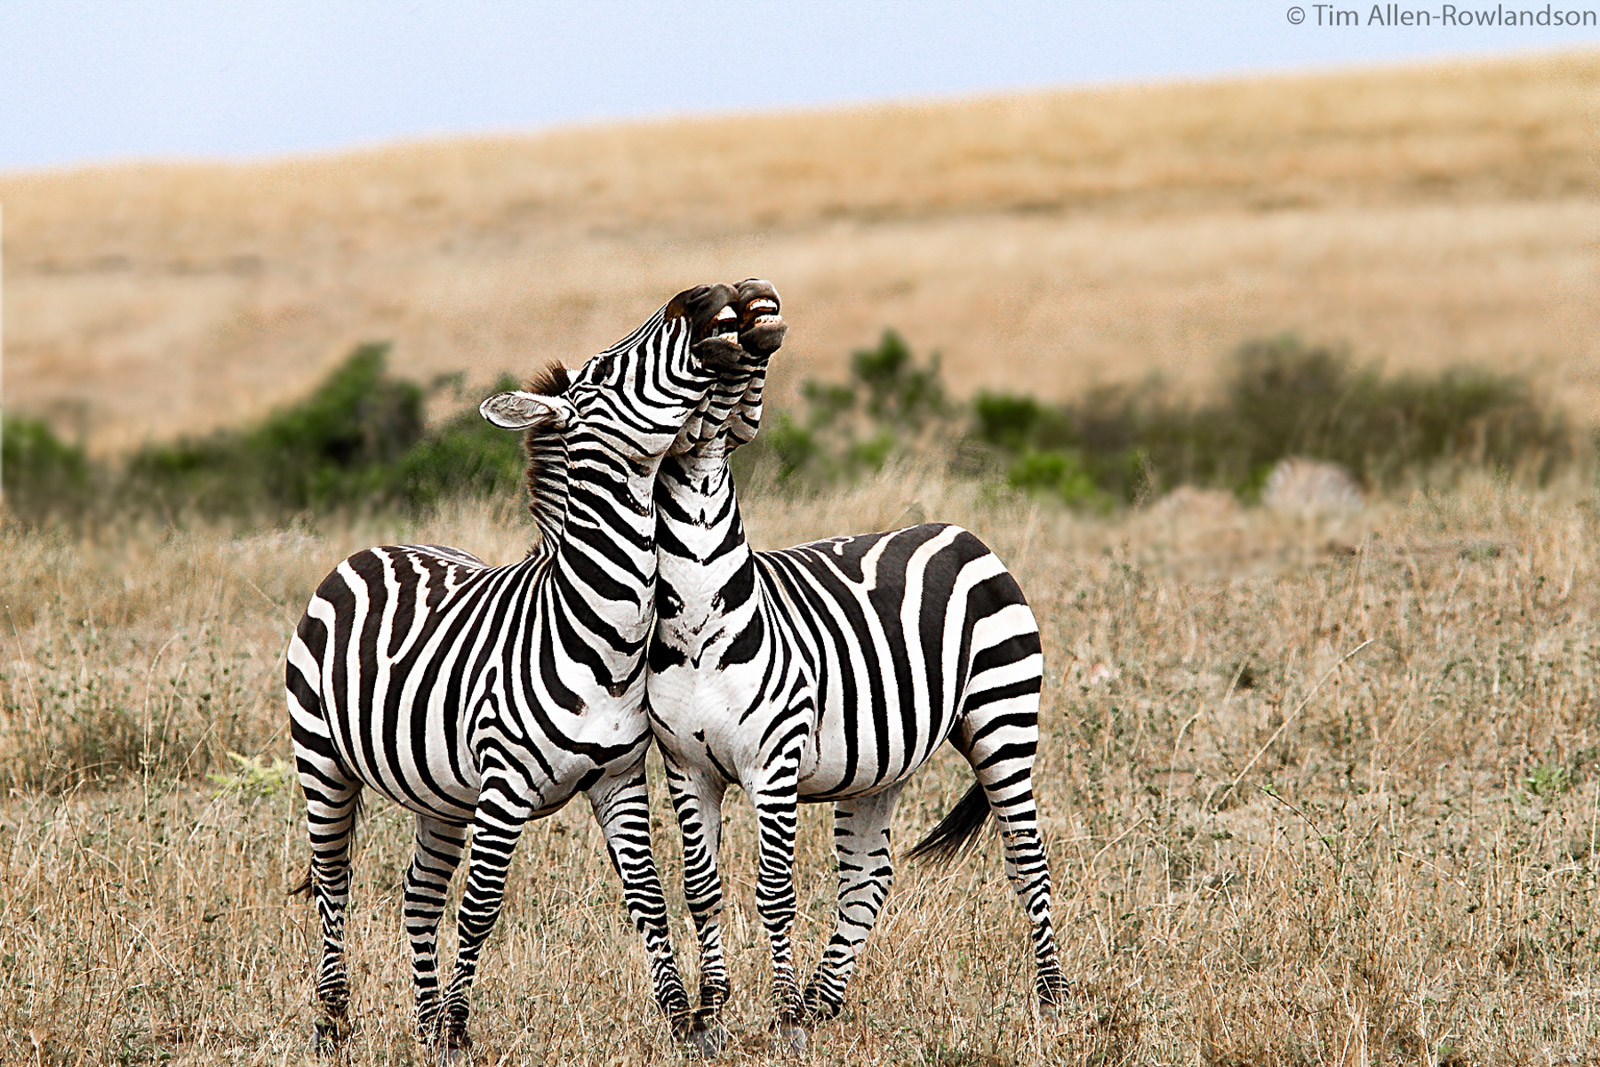 Two zebras sparring, Masai Mara